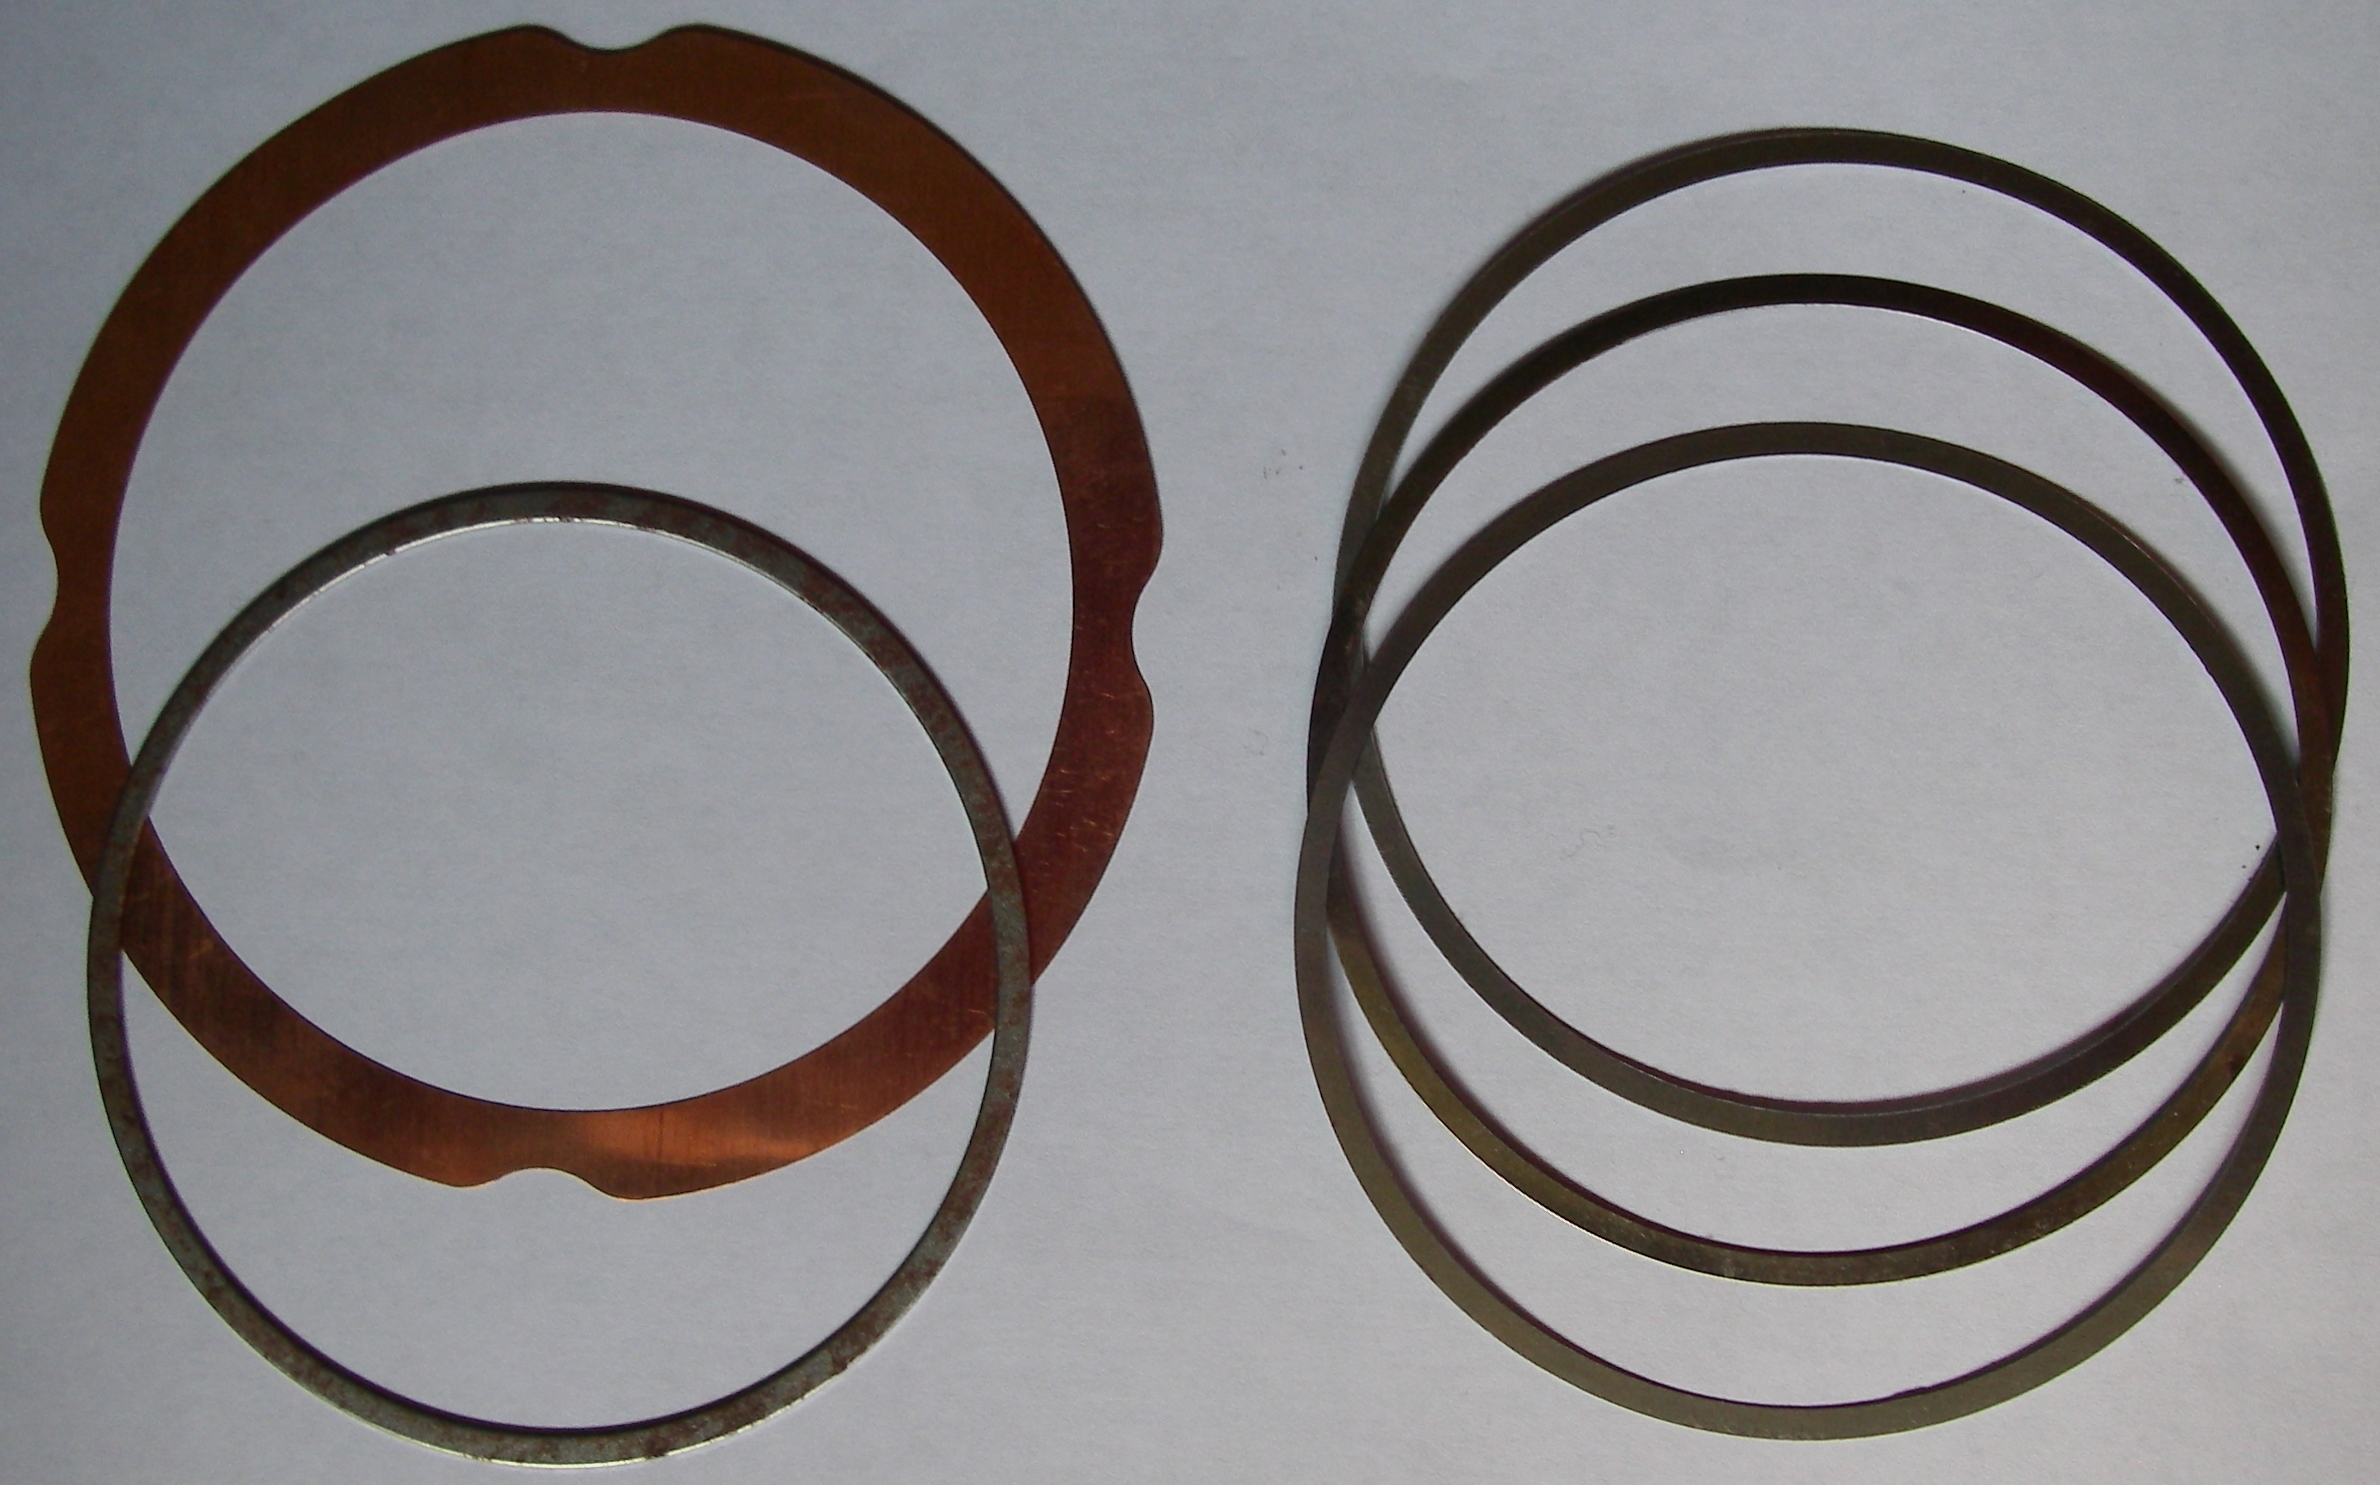 <b>Lister SR1 Engine Cylinder Head Gasket & Shim Set. </b>